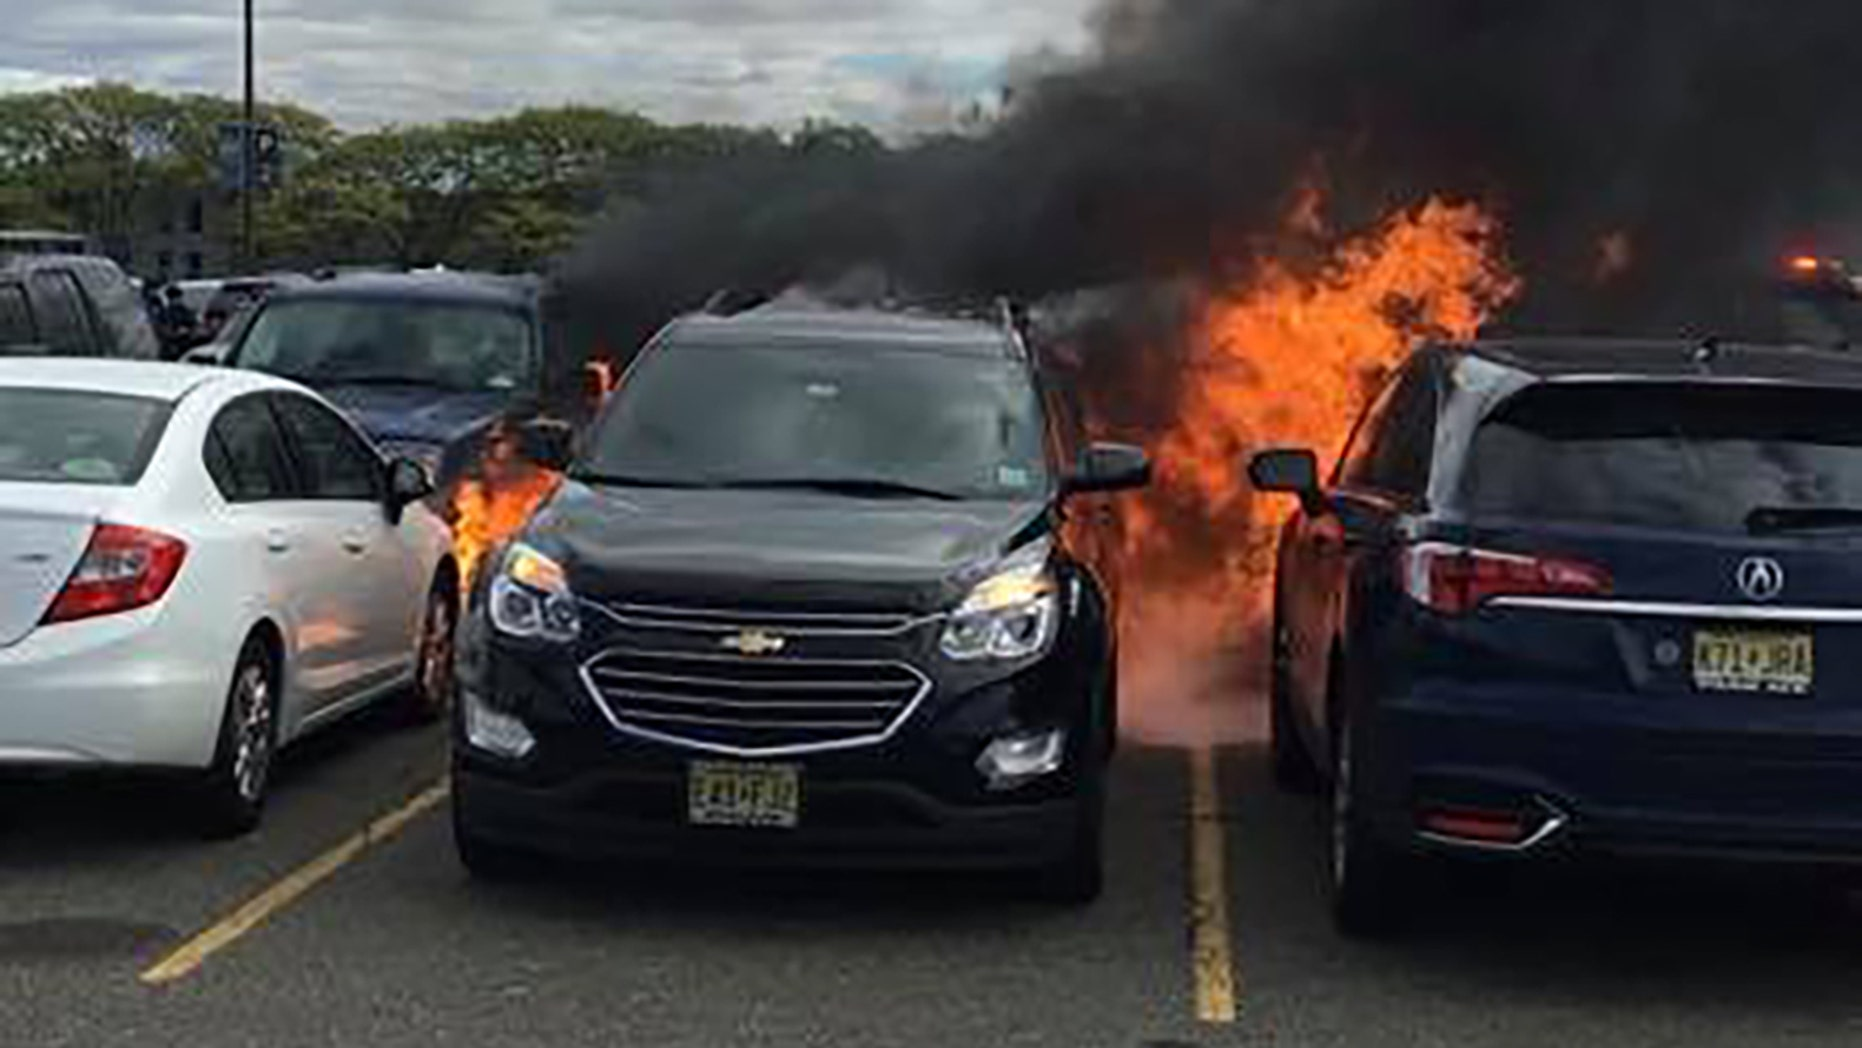 At least seven cars caught fire during the New York Jets game on Sunday.